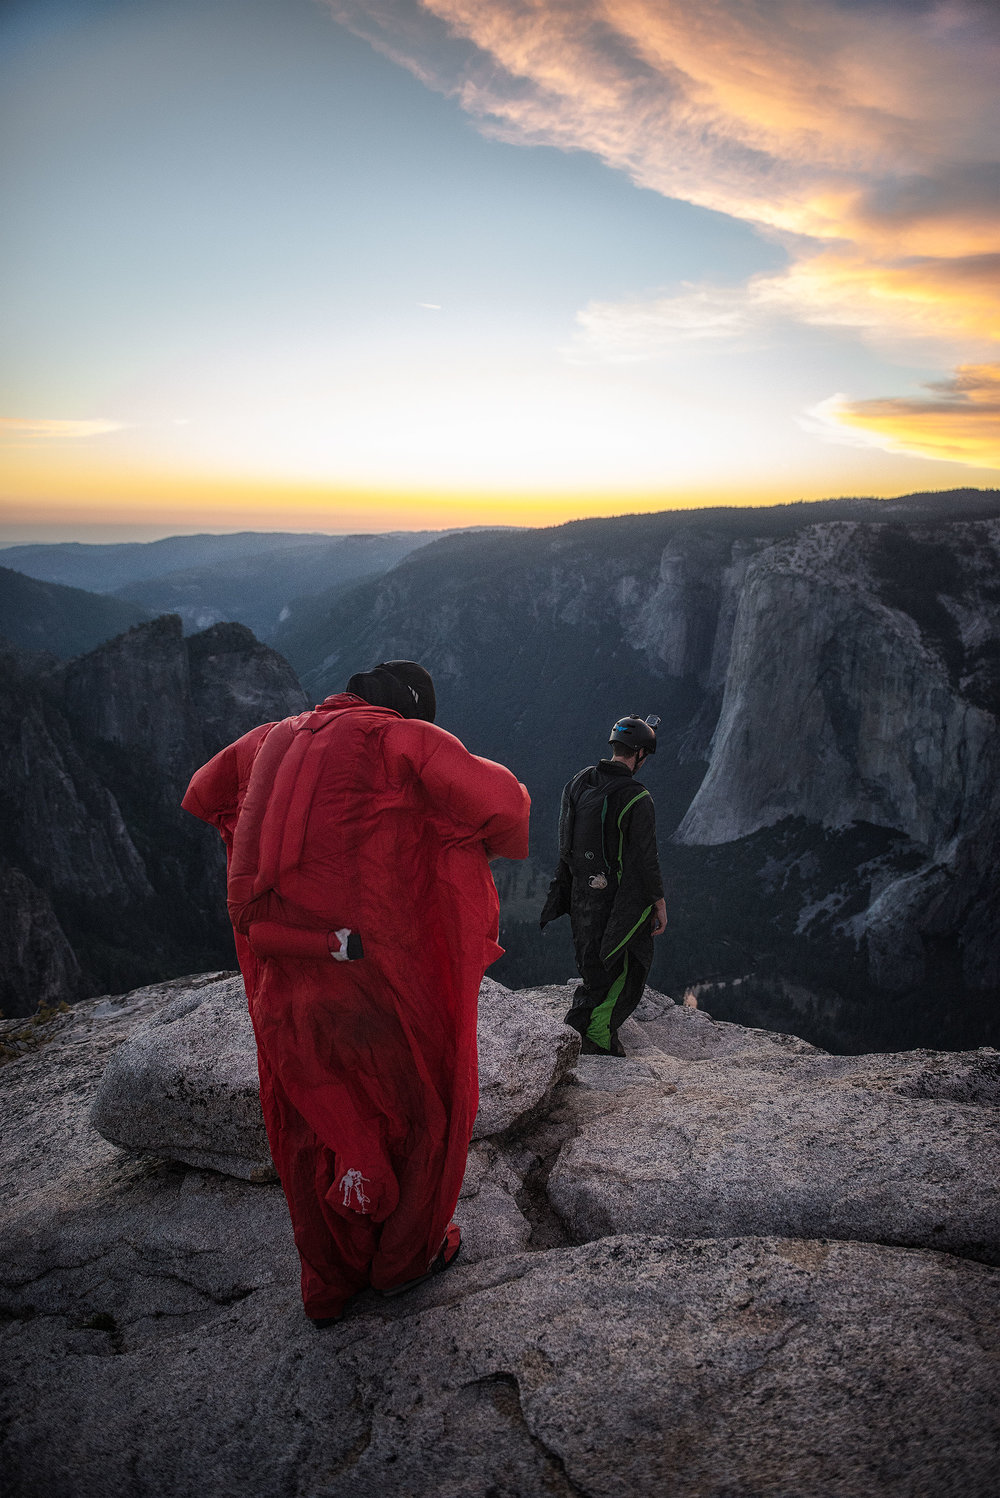 austin-trigg-wing-suit-base-jump-fly-taft-point-yosemite-lifestyle-california-adventure-thrill-seeking-dean-potter-prep-wingsuit.jpg